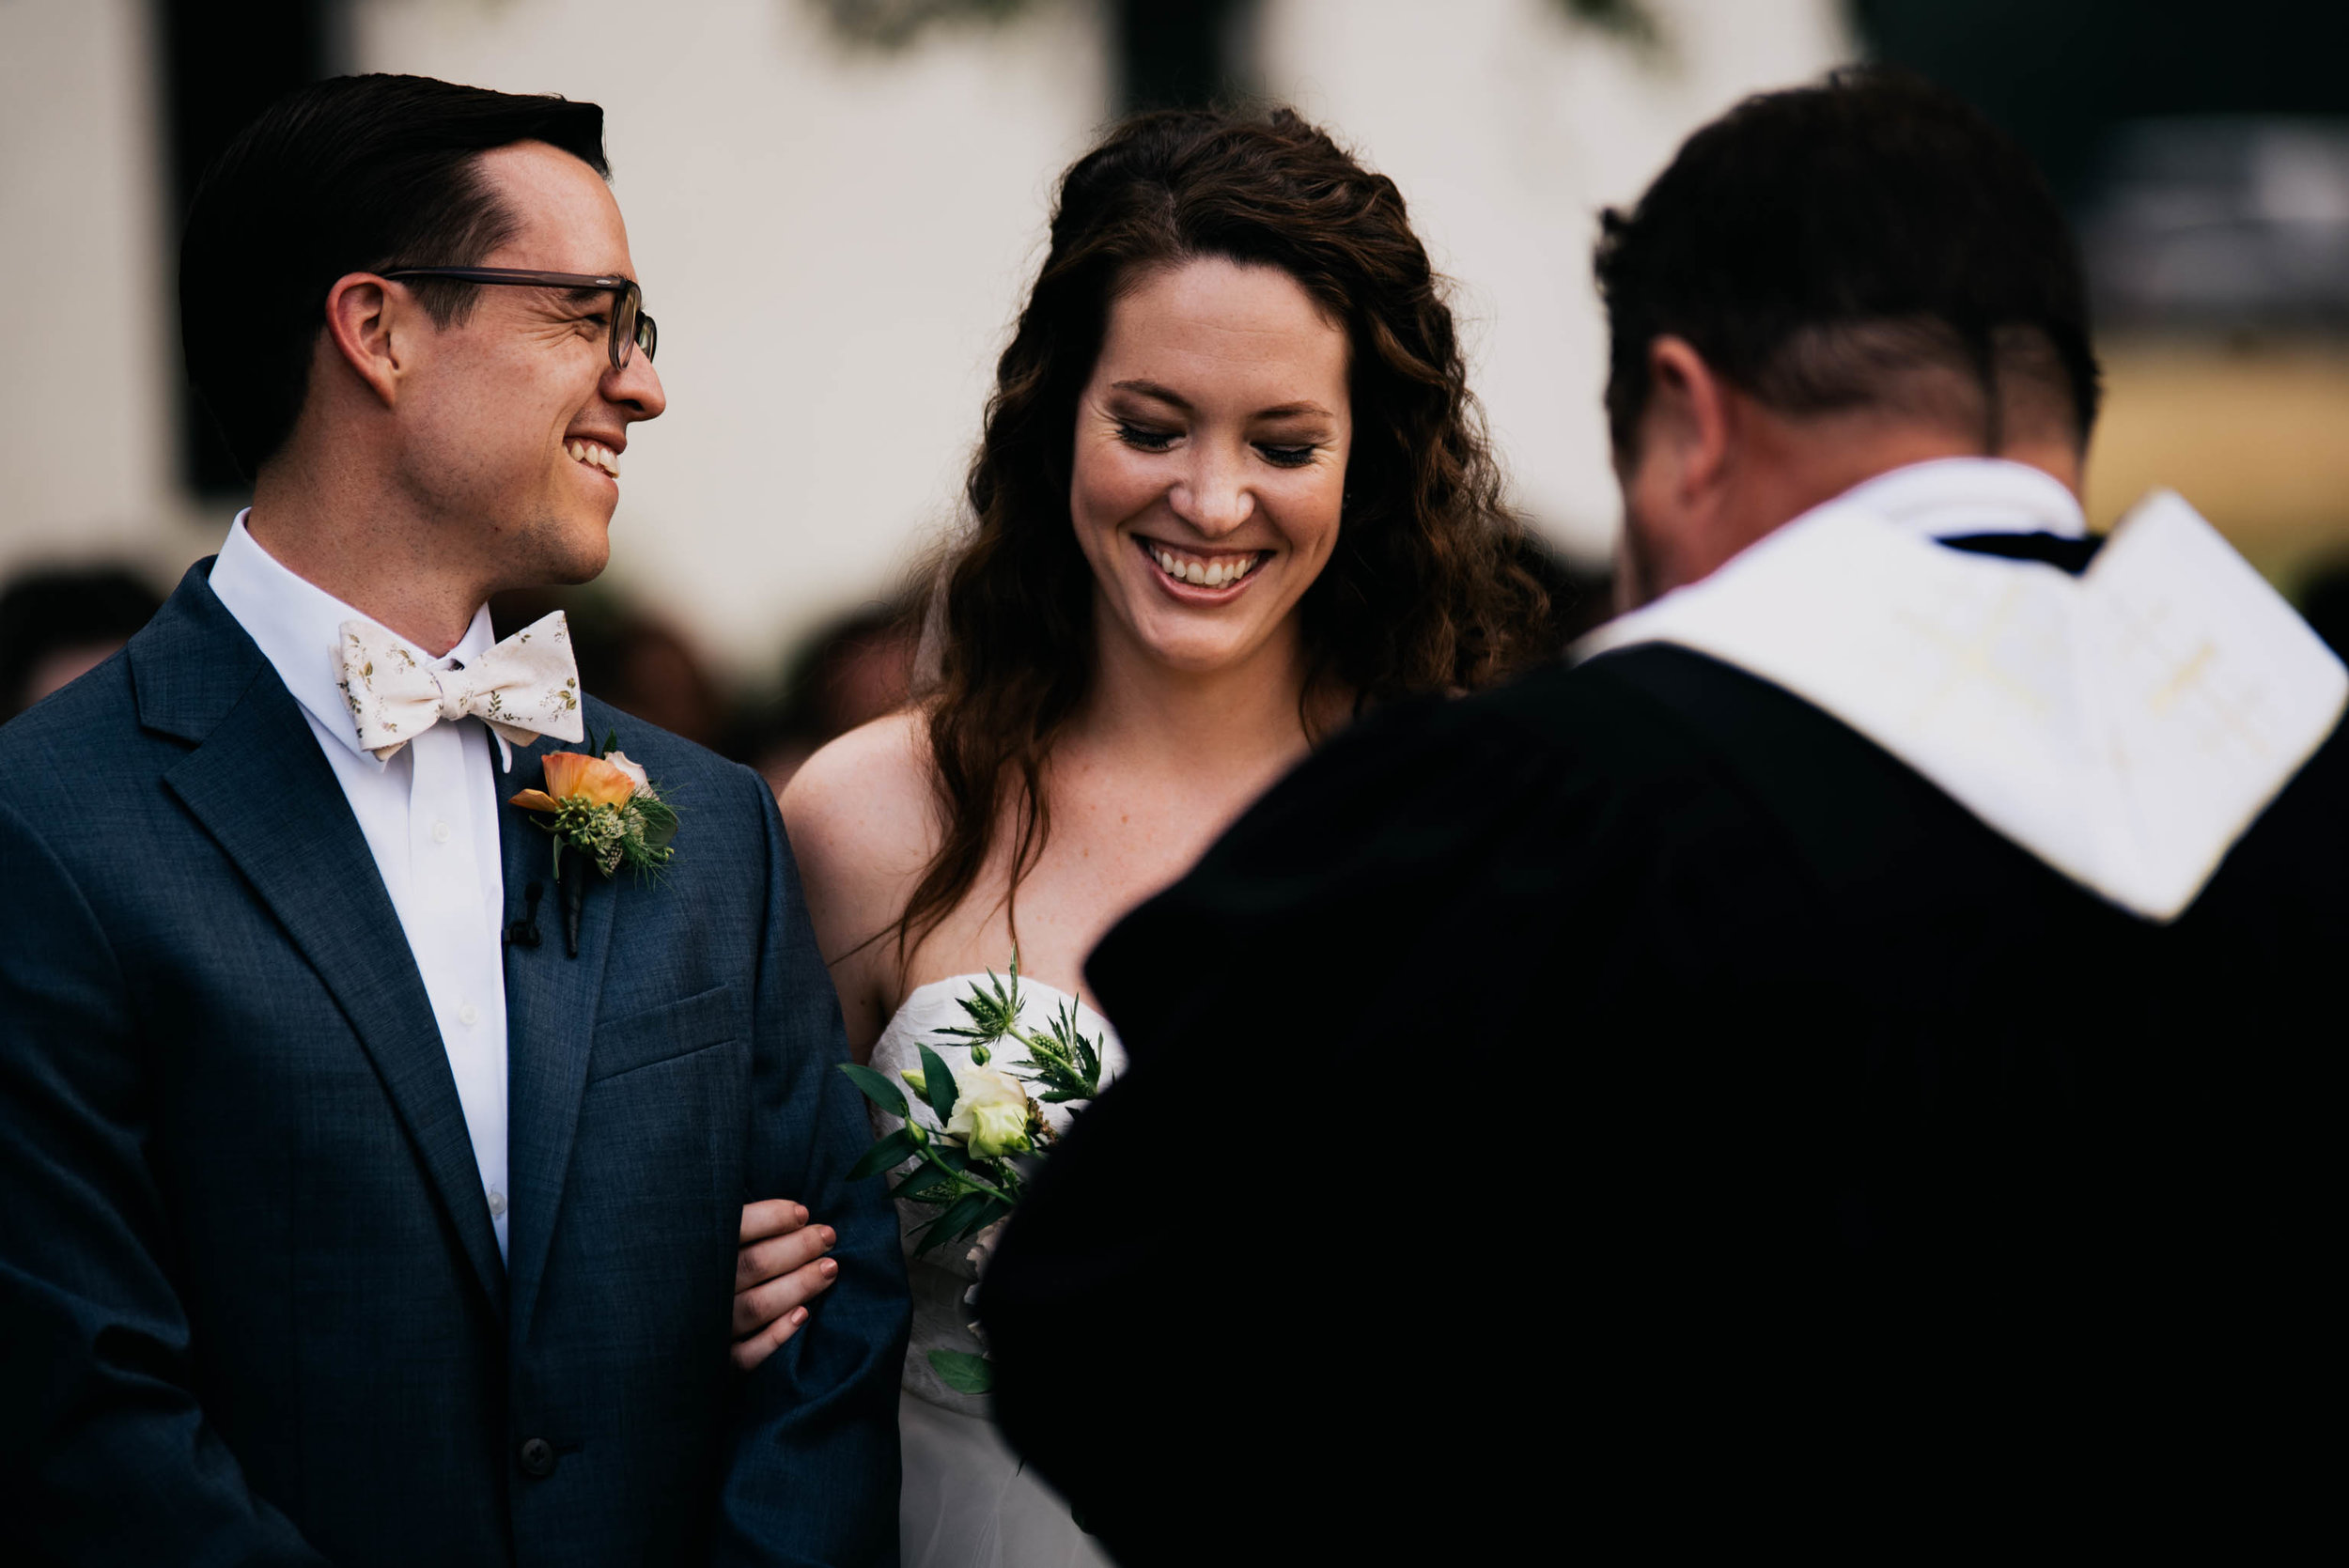 bride and groom laughing at a joke that the officiant shared during their wedding ceremony